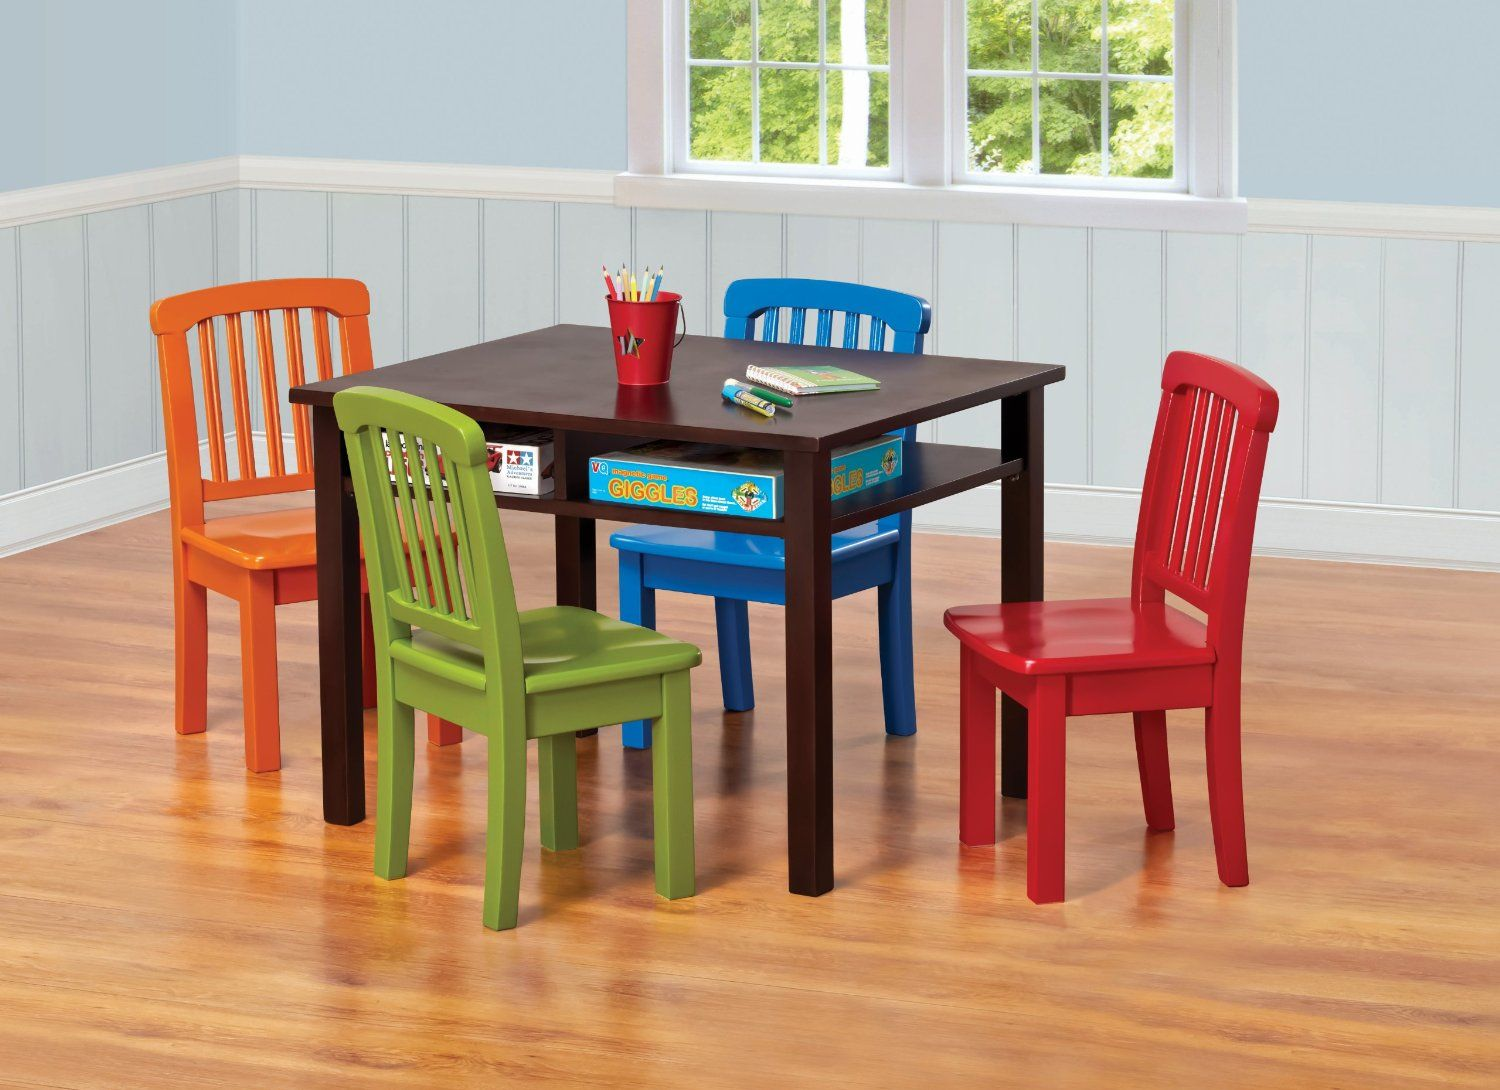 little kids table and chairs crate barrel lounge chair ukid rectangle childrens game with 4